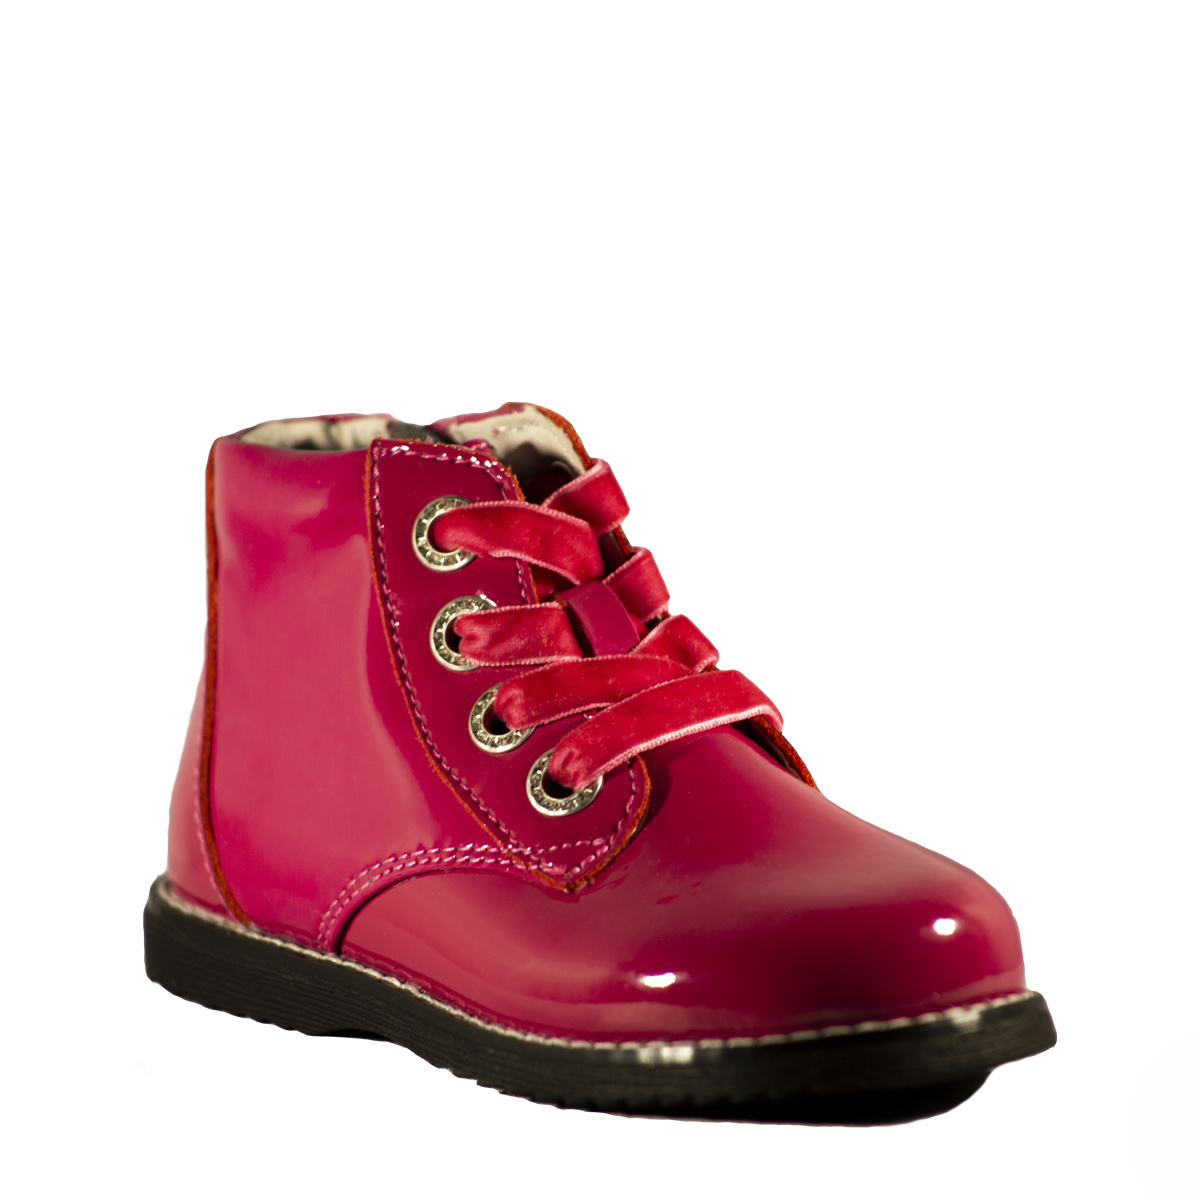 Lelli Kelly Camille Fuxia Patent